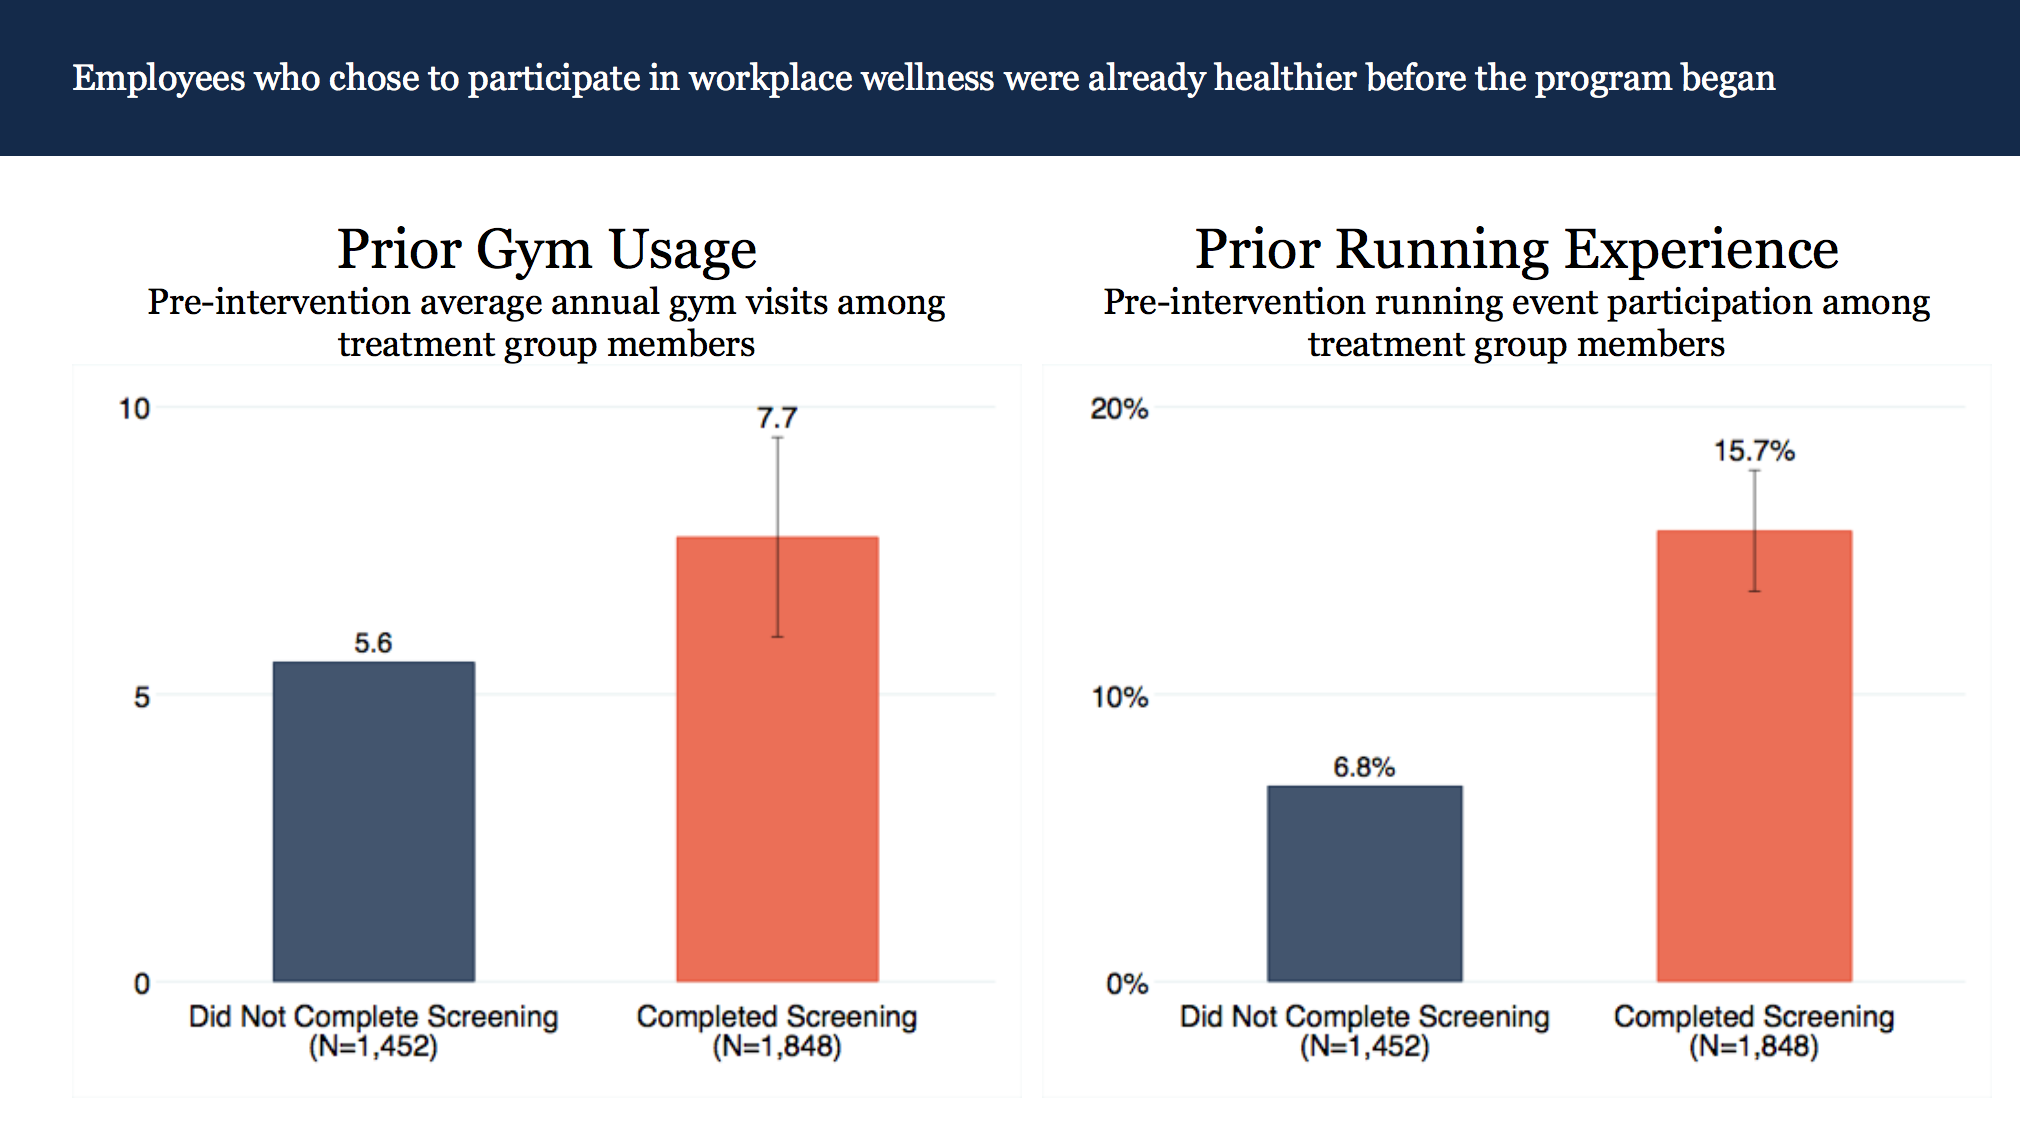 Employees who chose to participate in workplace wellness were already healthier before the program began